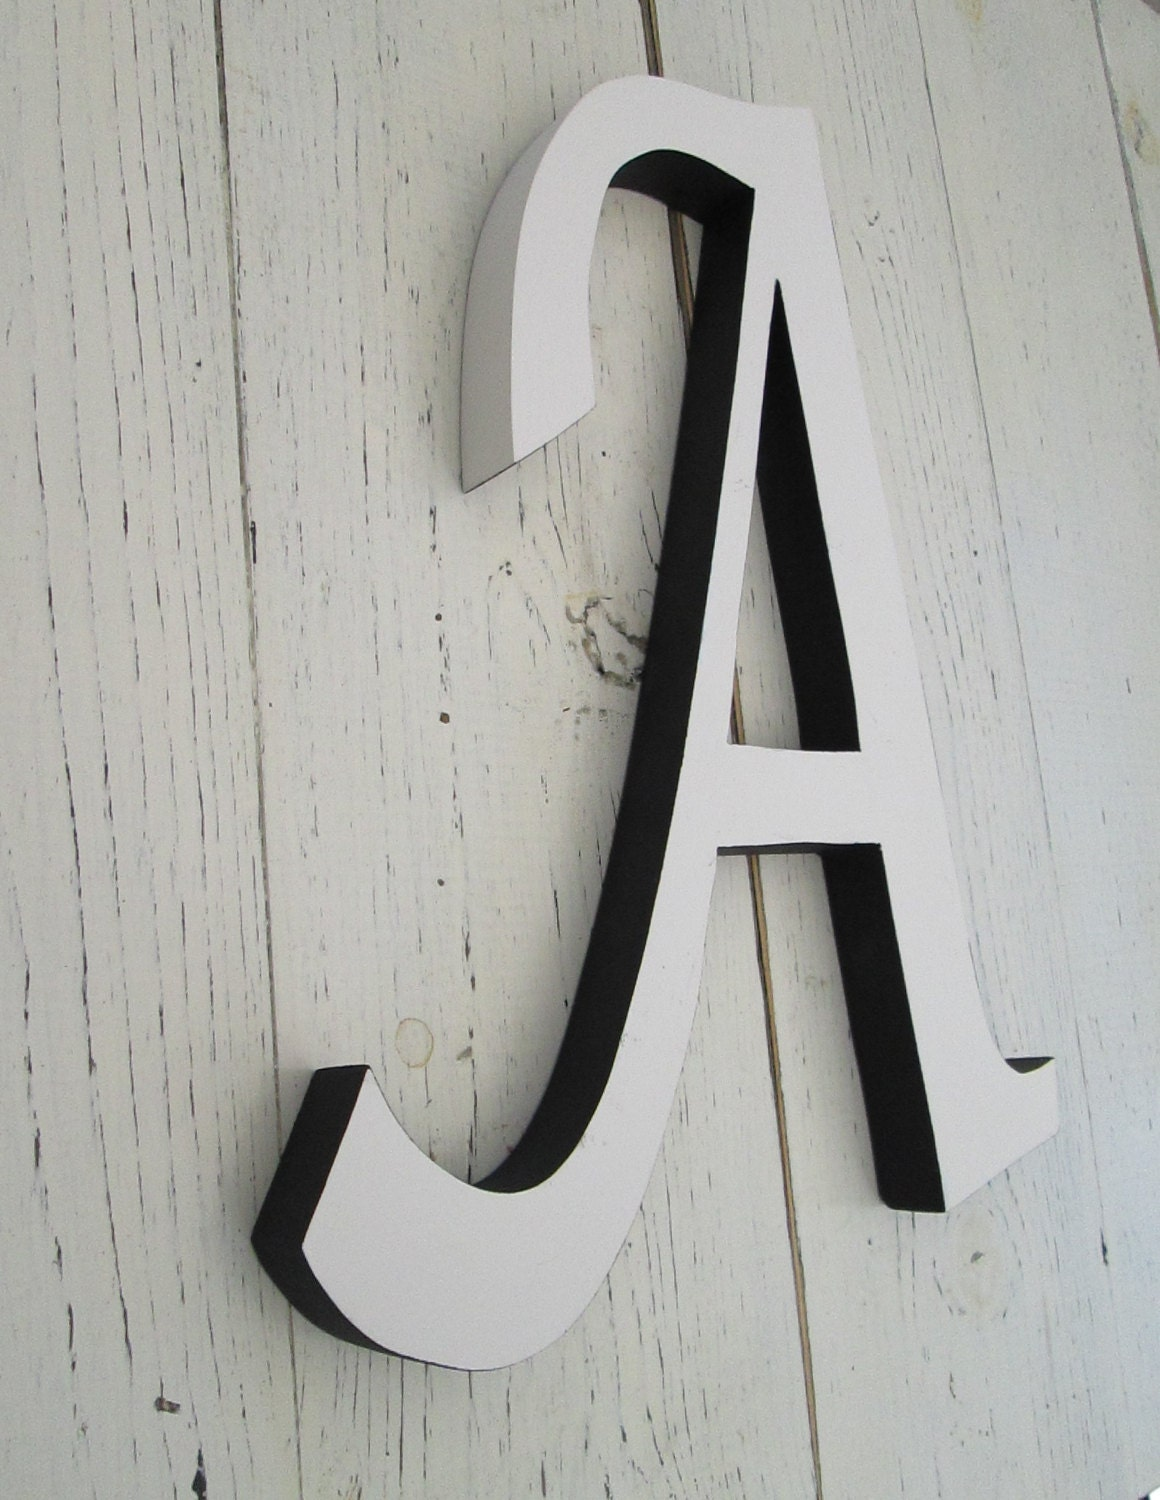 Calligraphy wall letters decorative gallery decor